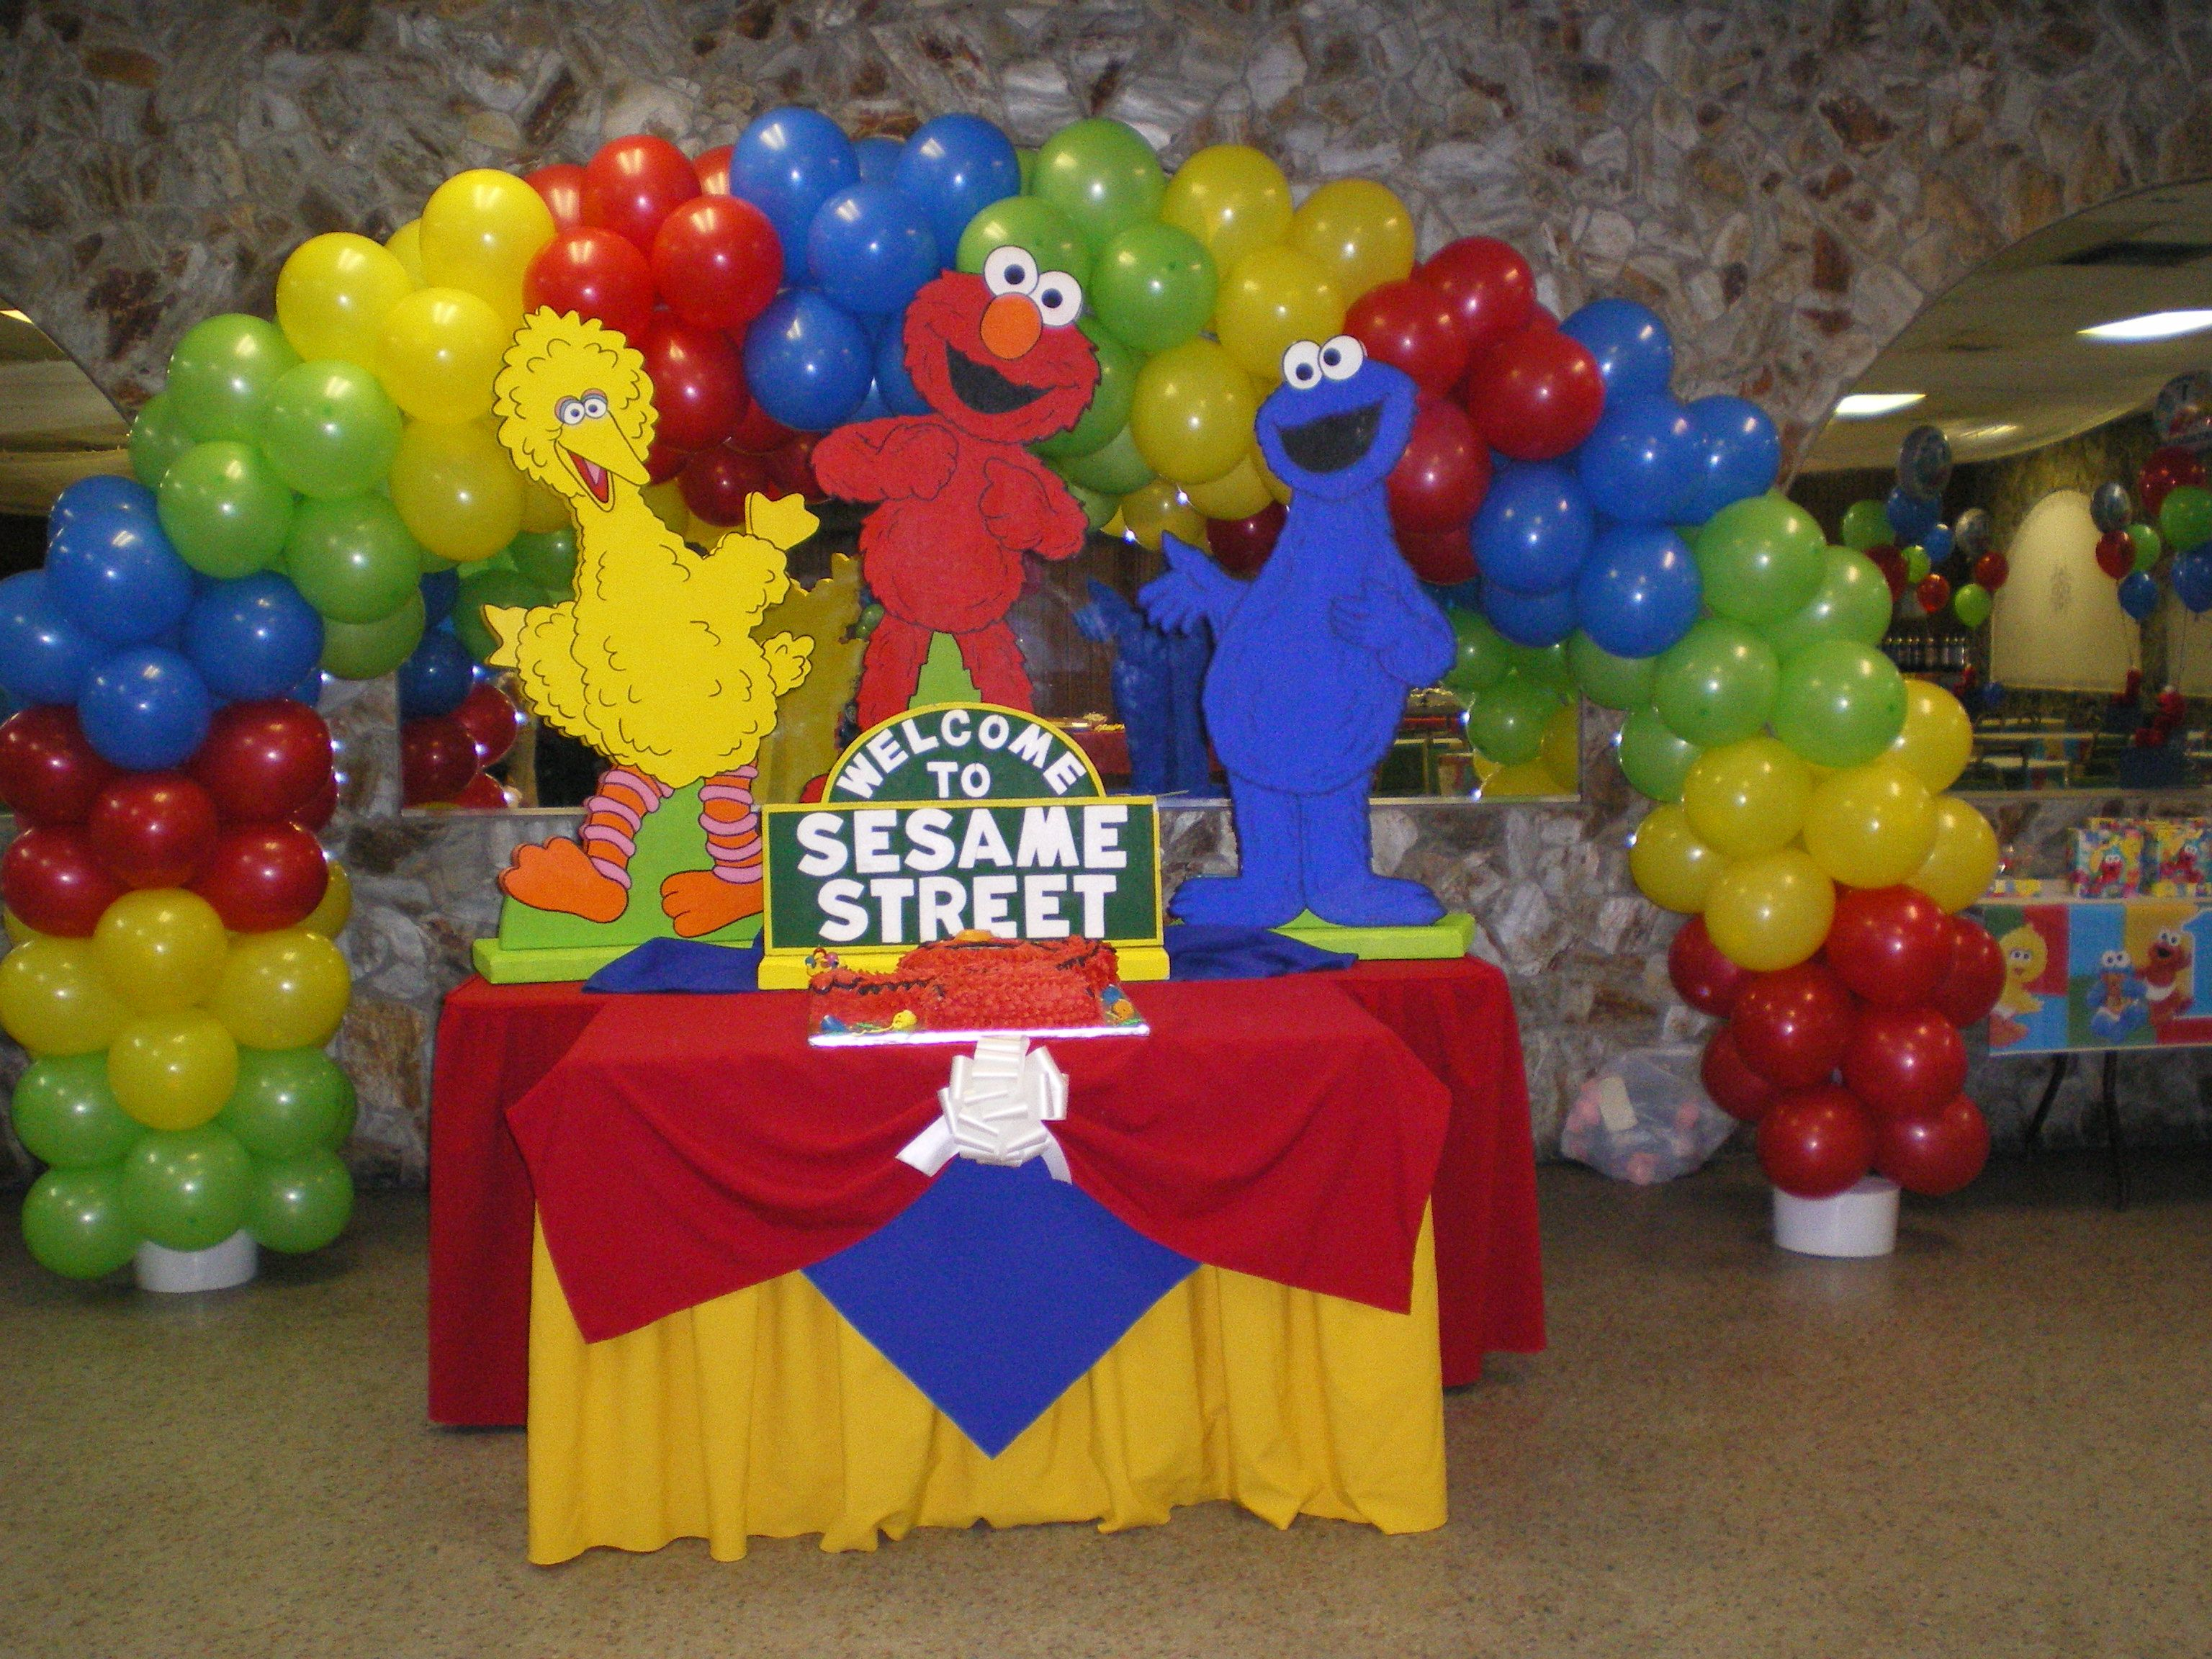 Elmo 1st birthday party ideas birthday party sesamestreet - Gallery Decorations Click Pictures Find This Pin And More On Party Centerpieces By Bakermom7777 Balloon Arch For A Sesame Street Birthday Party